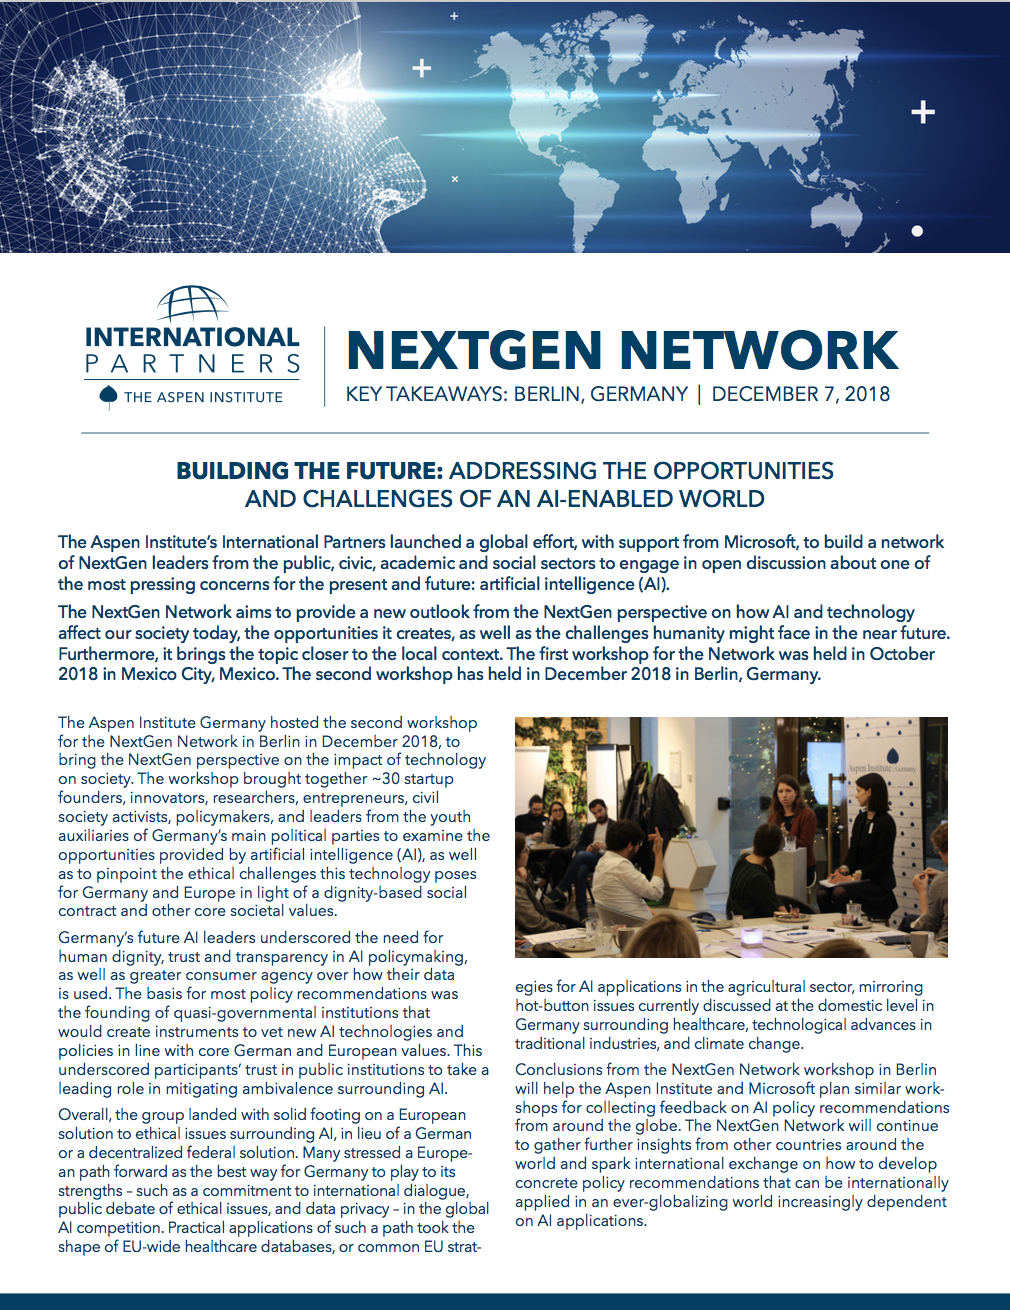 NextGen Network: Berlin, Germany